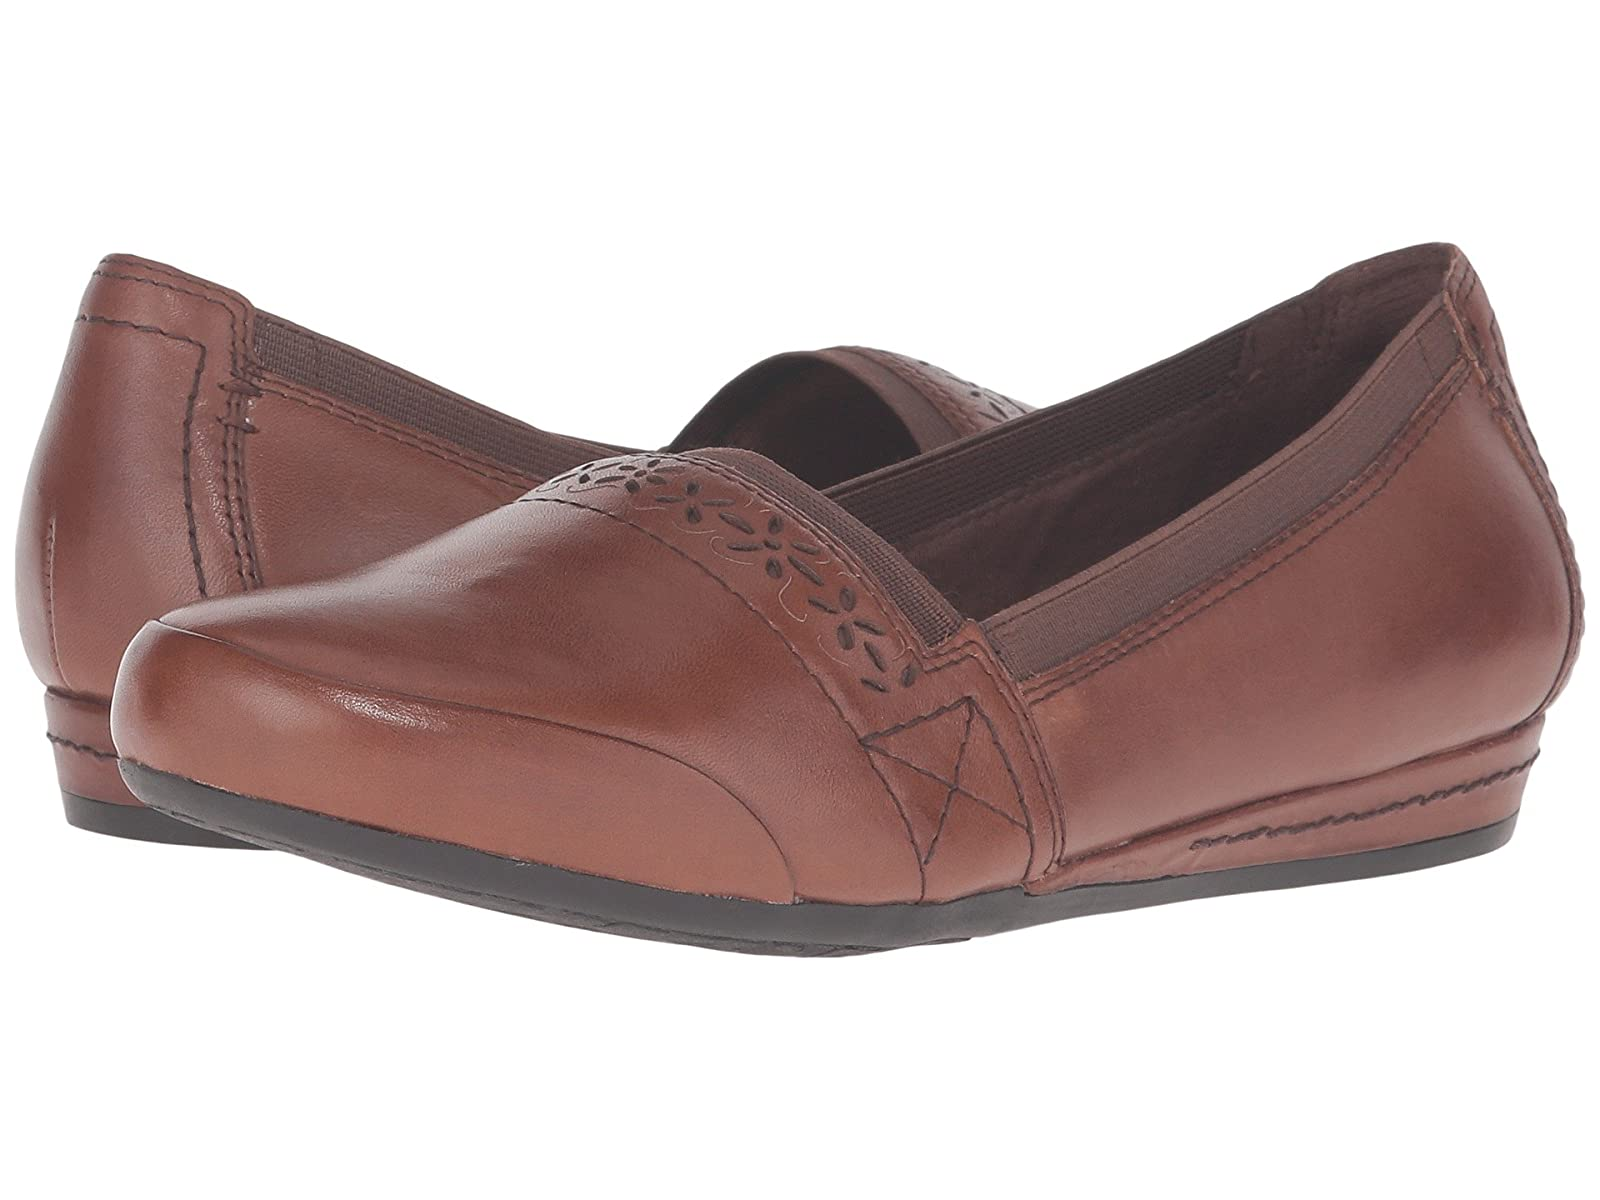 Rockport Cobb Hill Collection Cobb Hill GigiCheap and distinctive eye-catching shoes